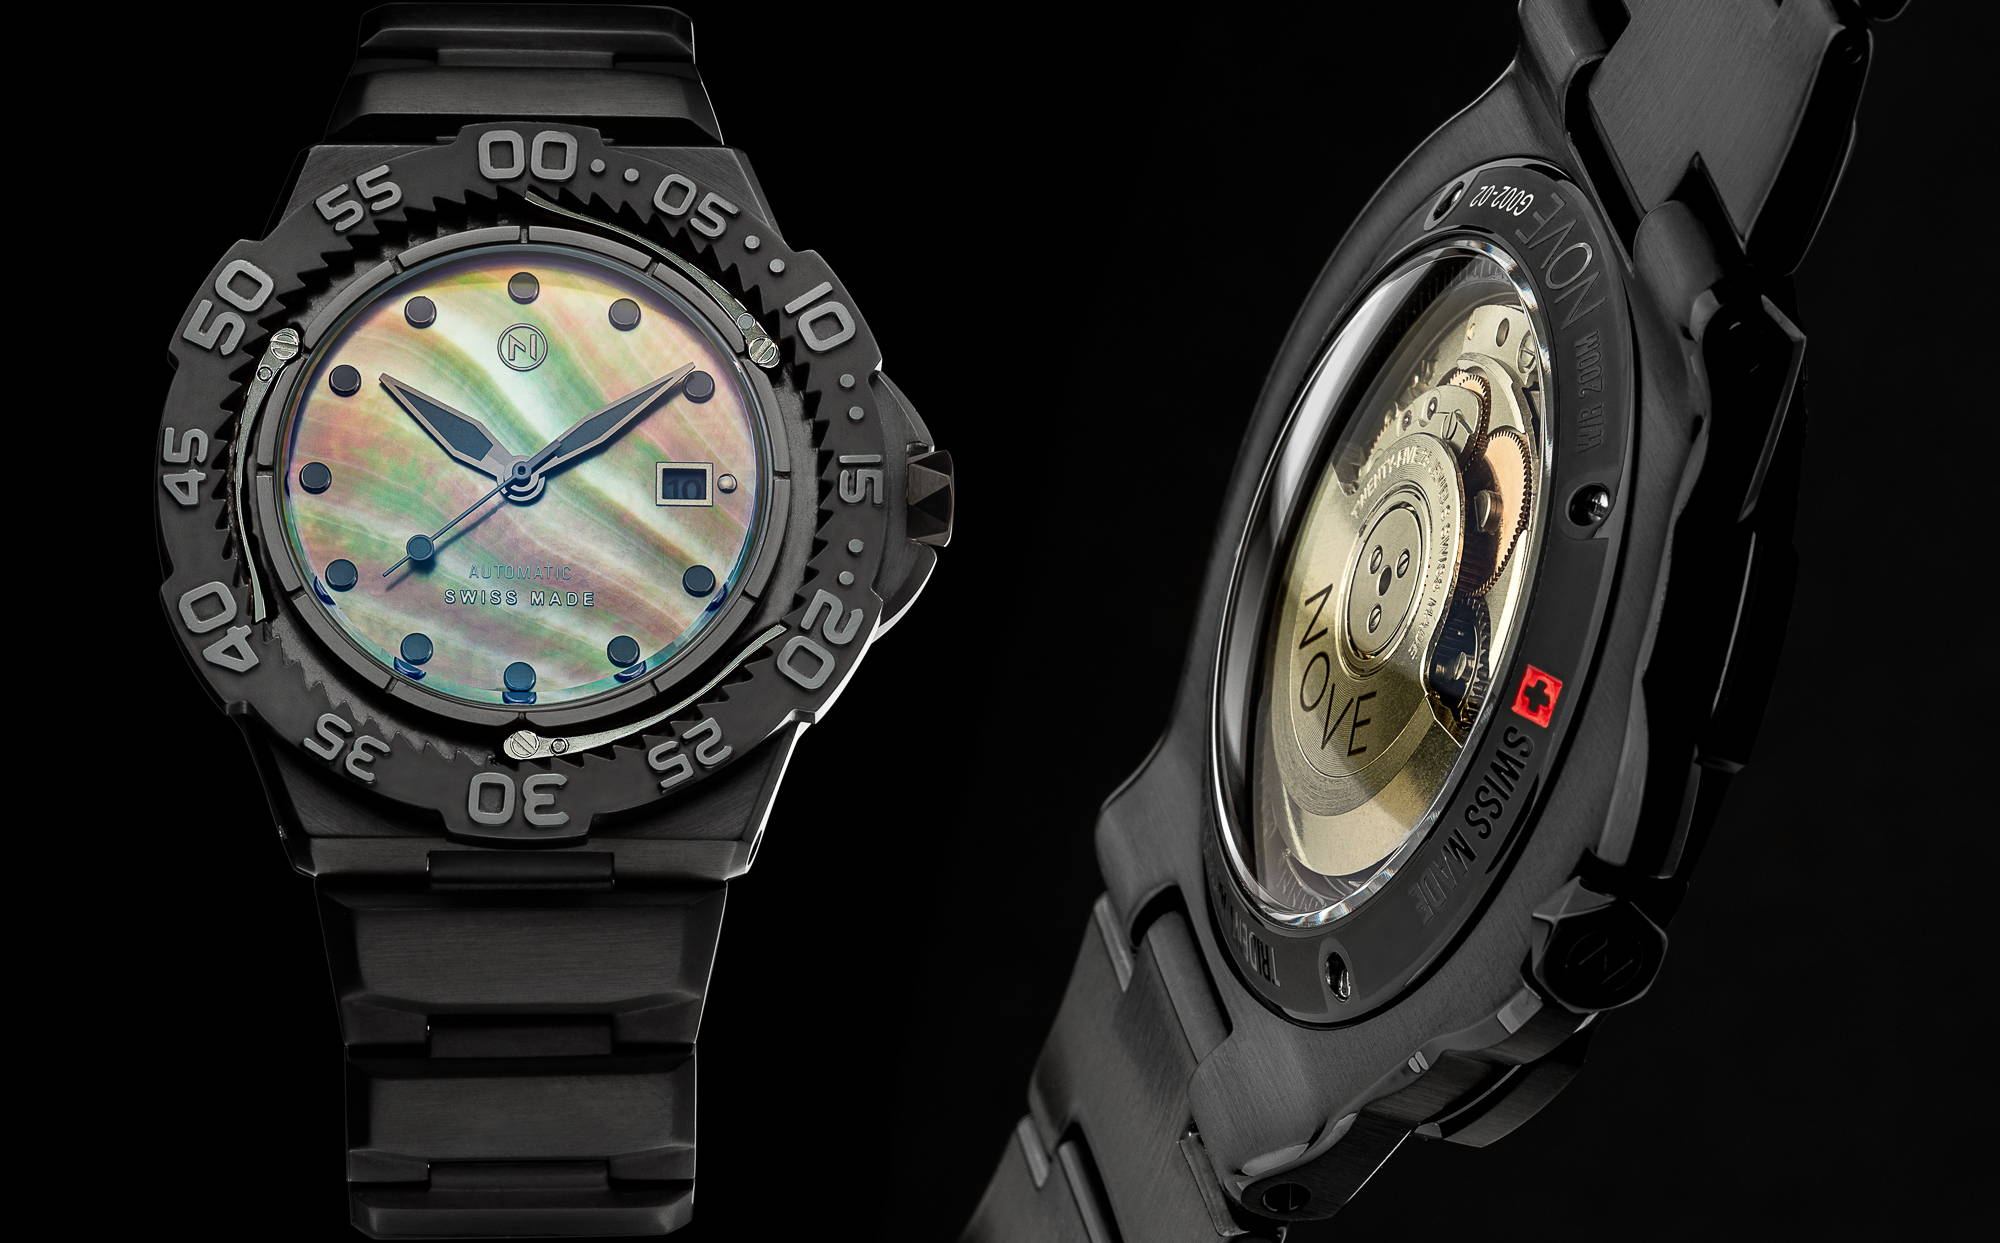 Black slim trident automatic dive watch tool watch with beautiful Tahitian mother of pearl dial